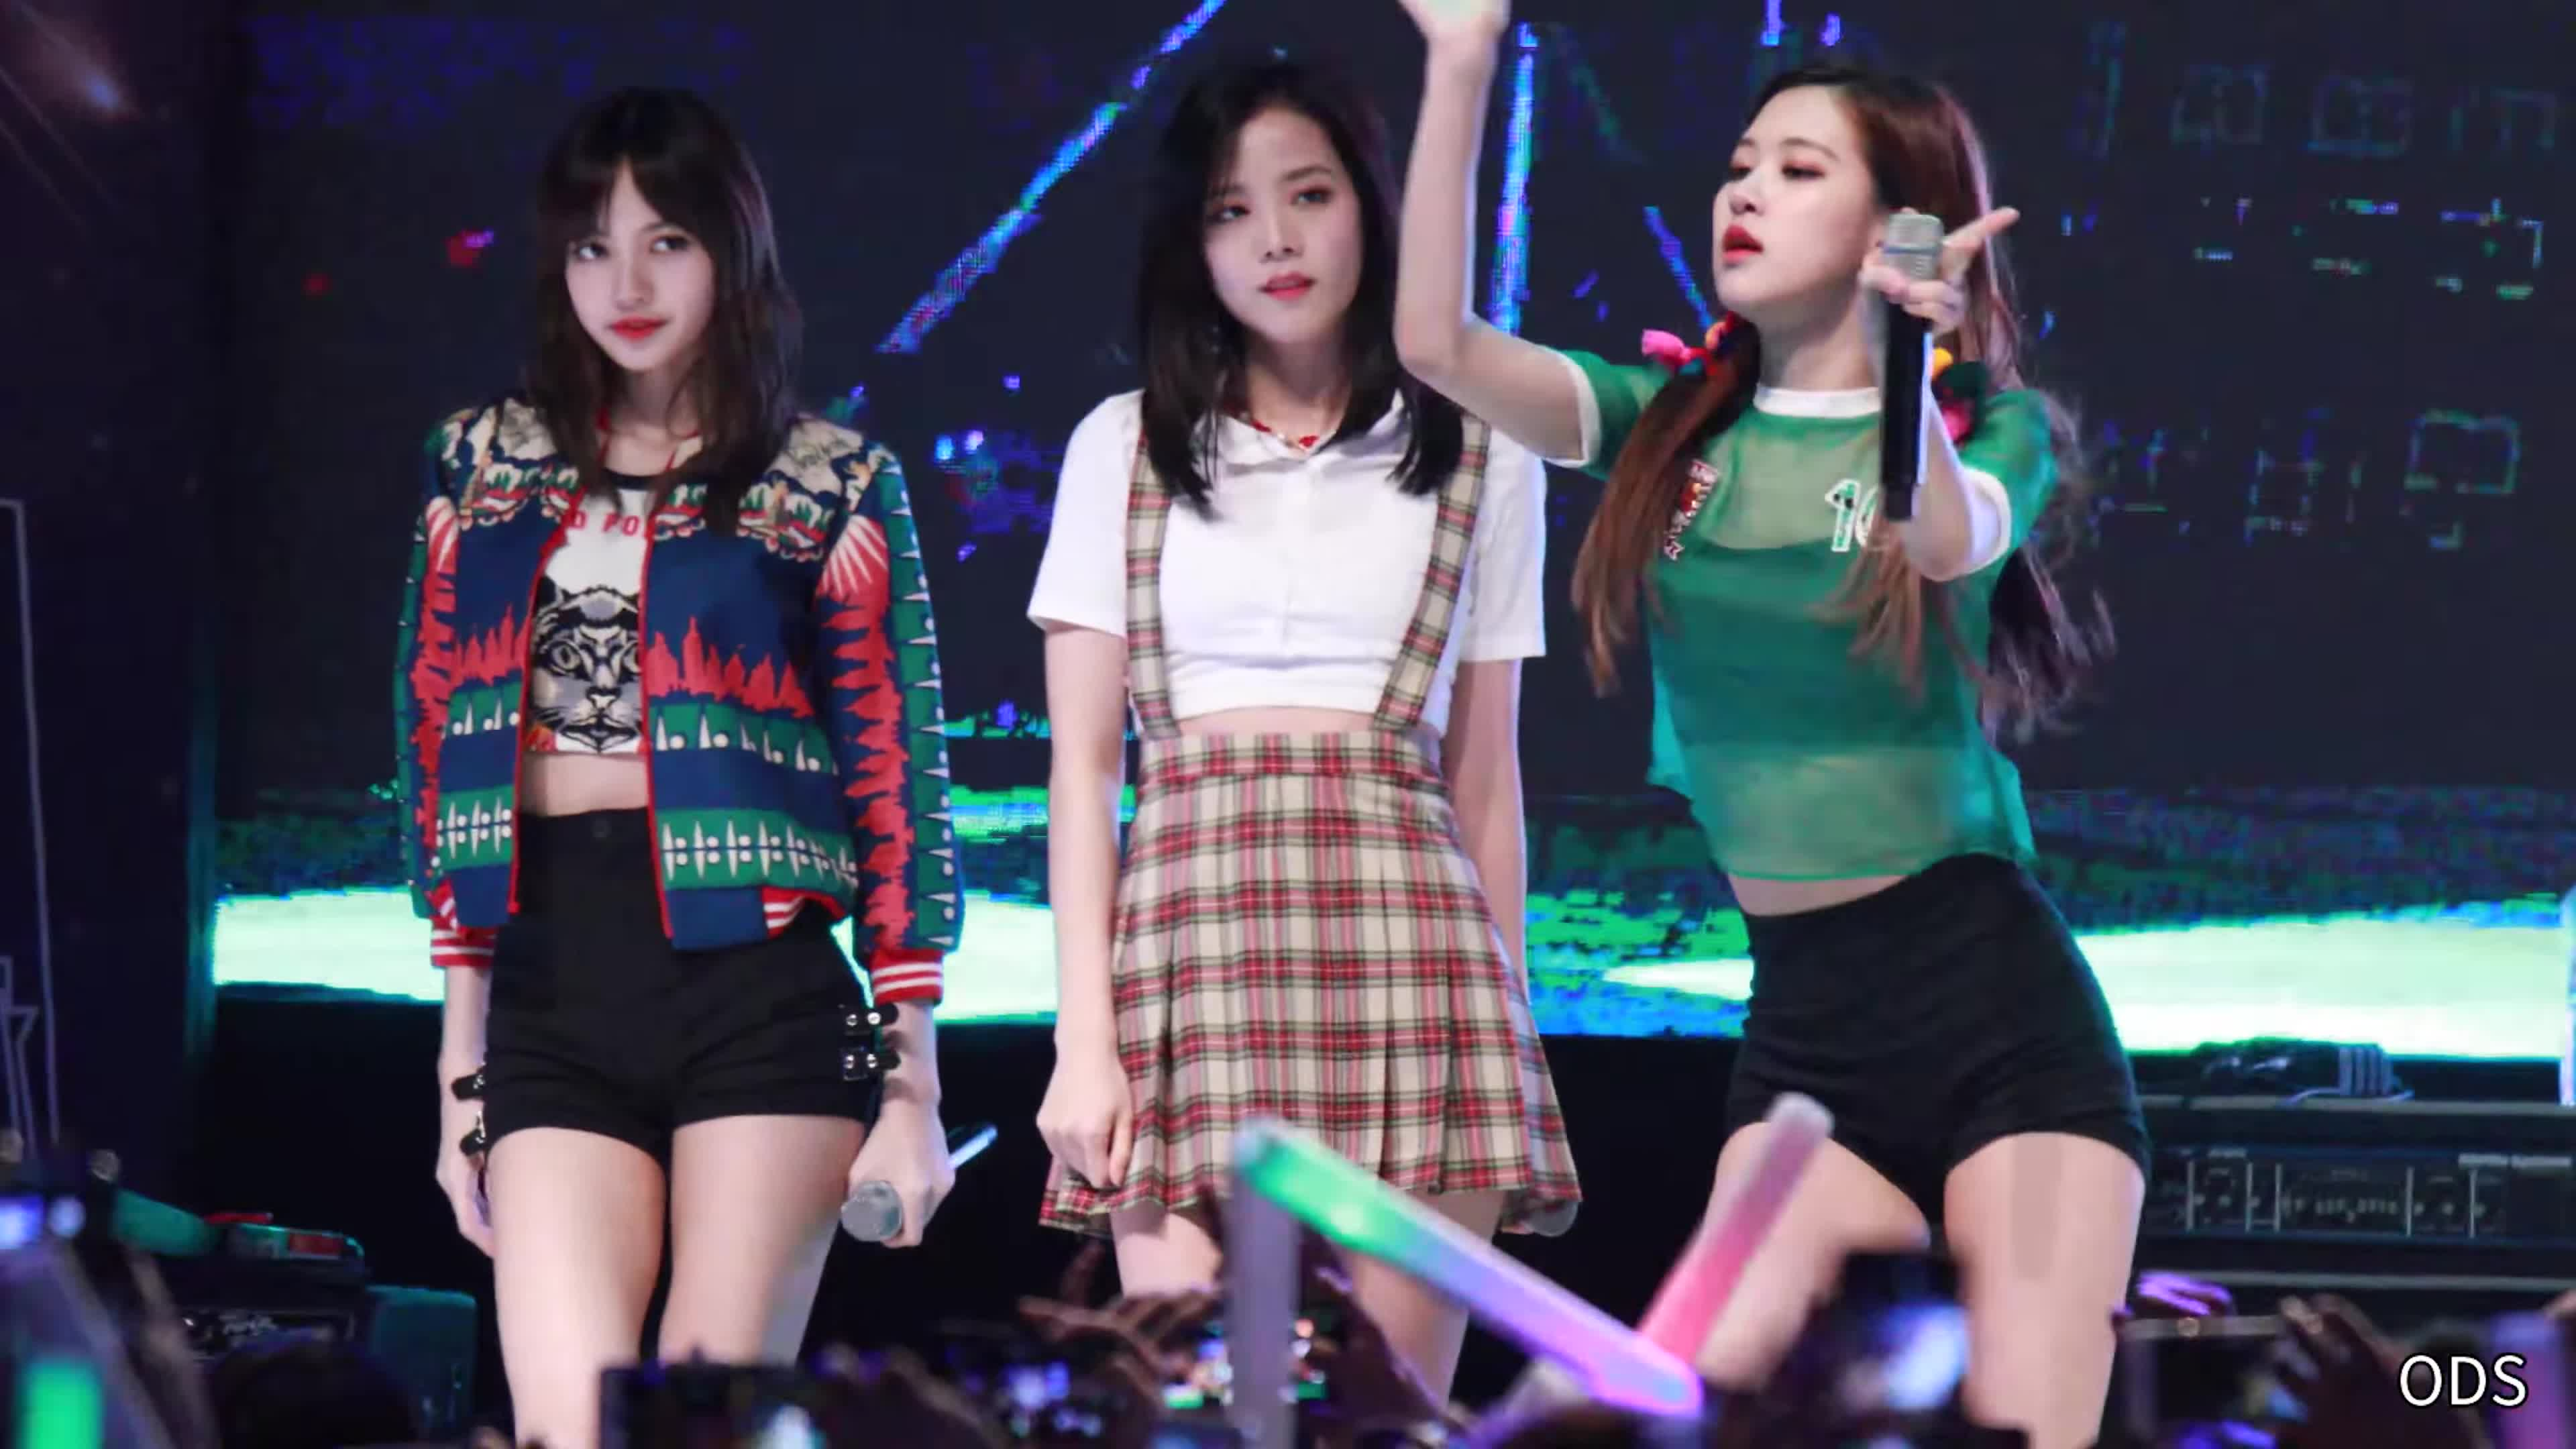 BlackPink Rose, Jisoo, and Lisa Lead GFY Low Bit Rate GIFs